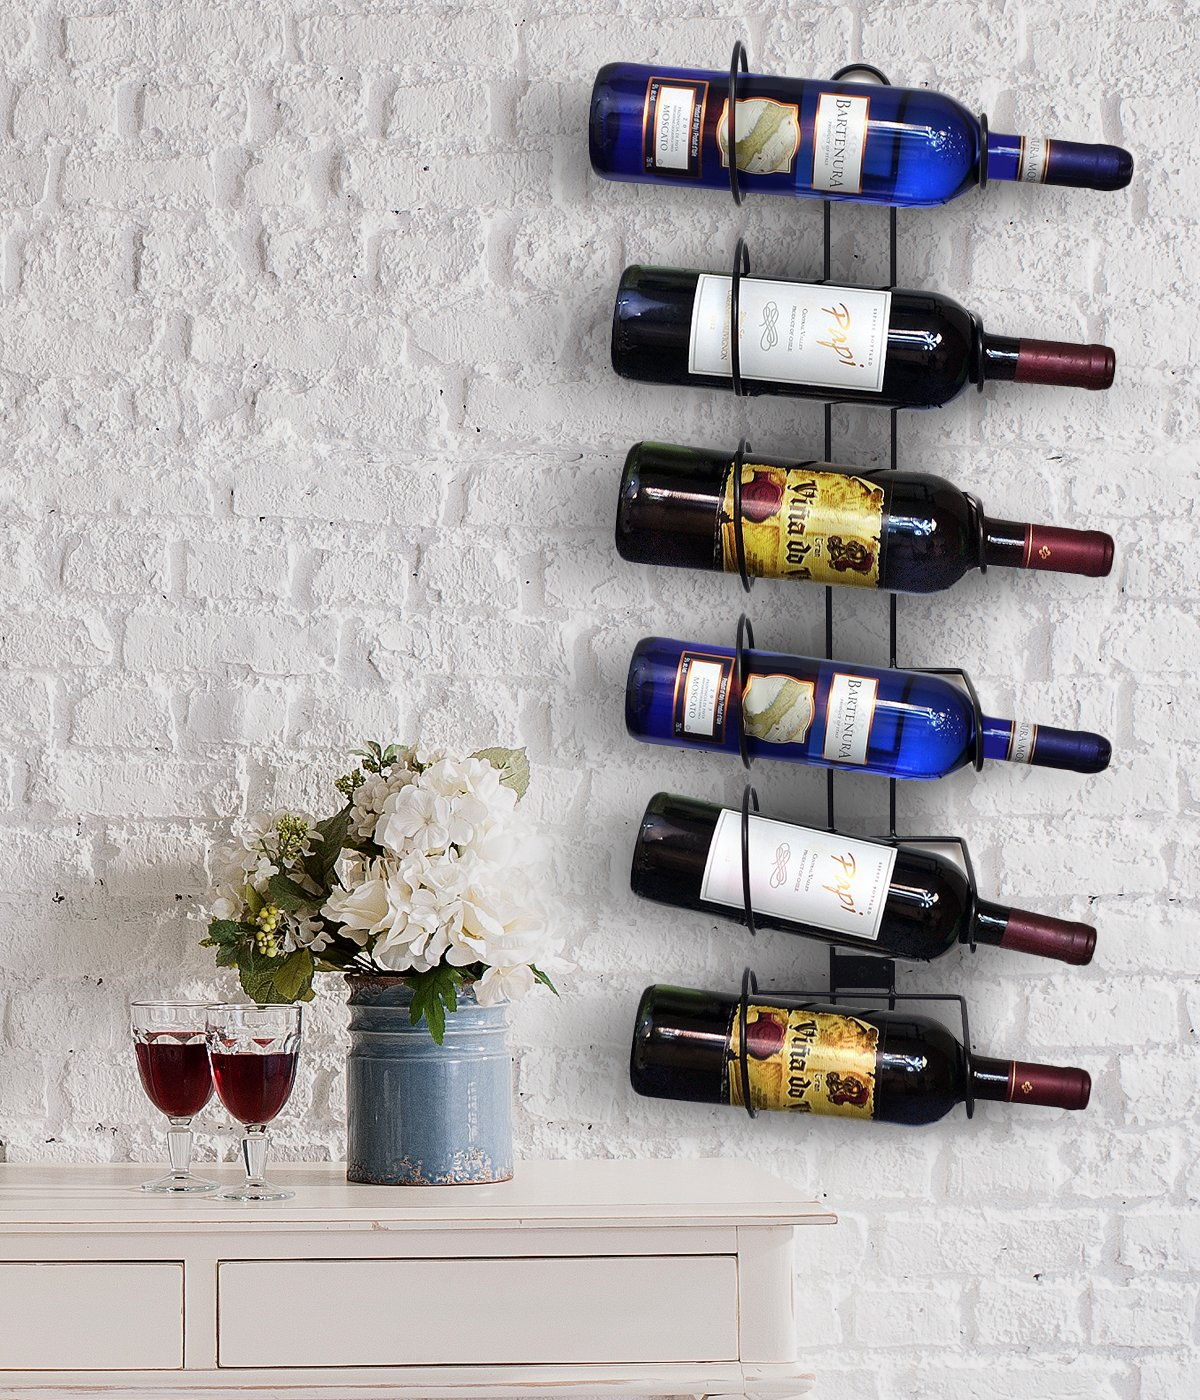 Sorbus Wall Mount Wine Rack Holds 6 Bottles of Wine or Champagne